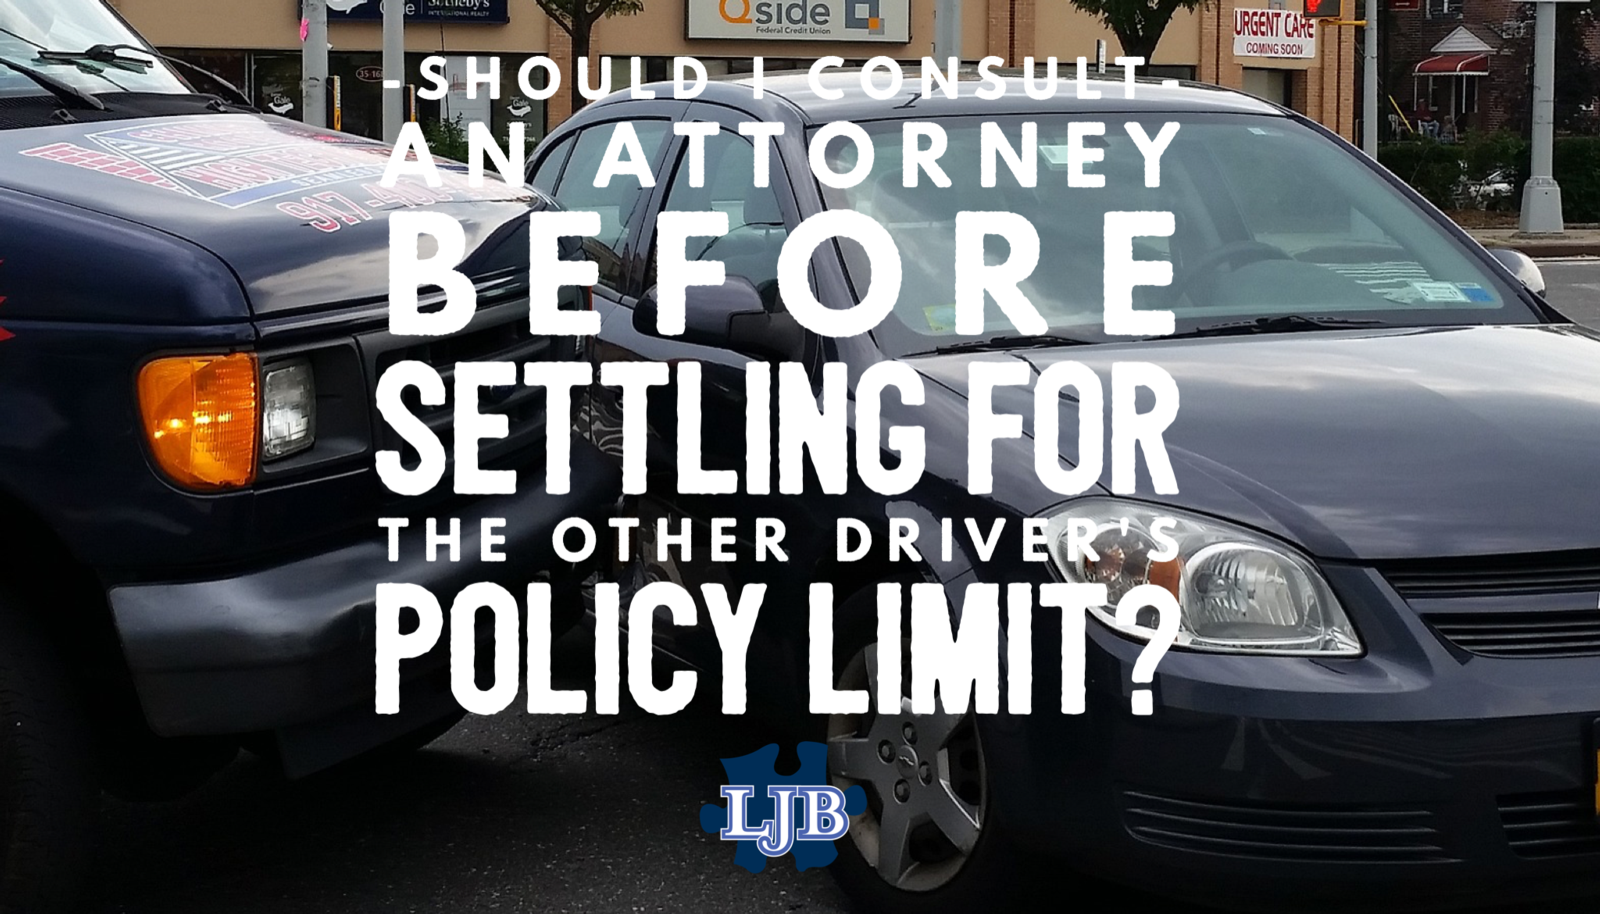 Should I consult an attorney before settling for the other driver's policy limit?